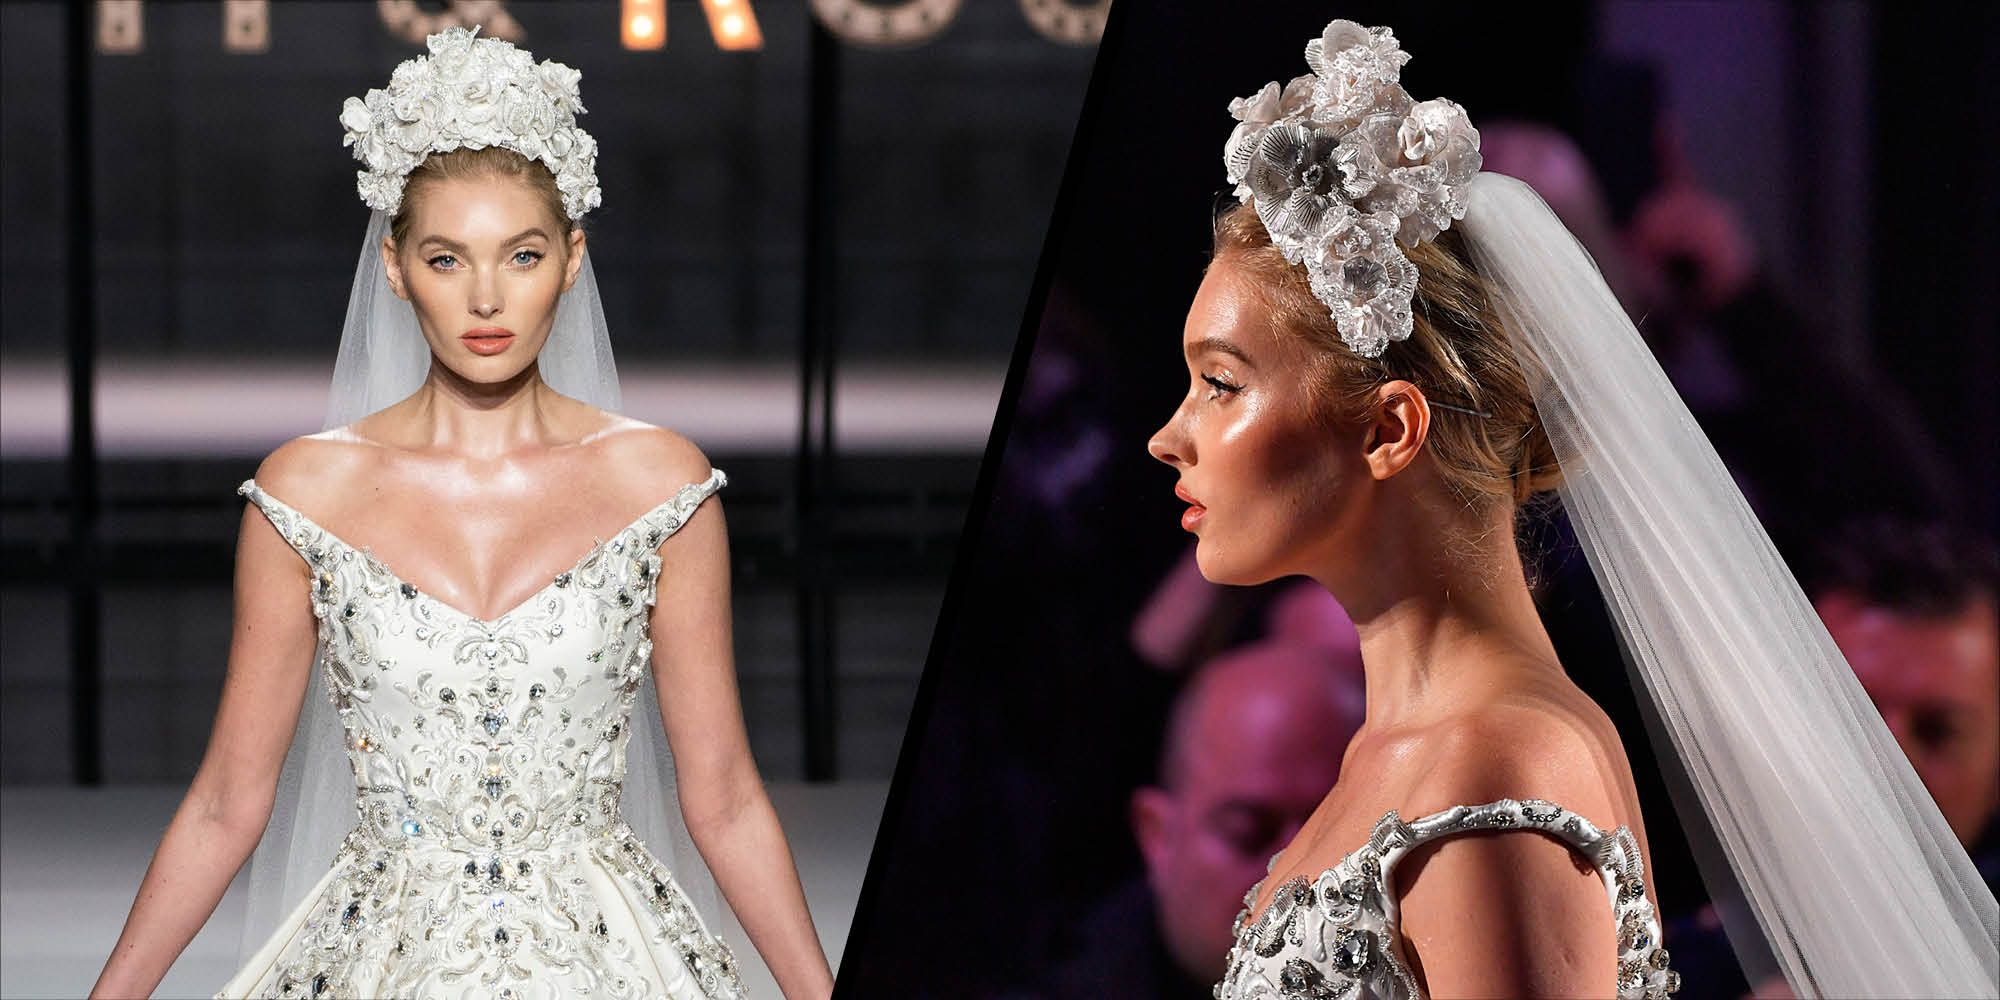 See The Breathtaking Ralph & Russo Bridal Gown From Every Angle